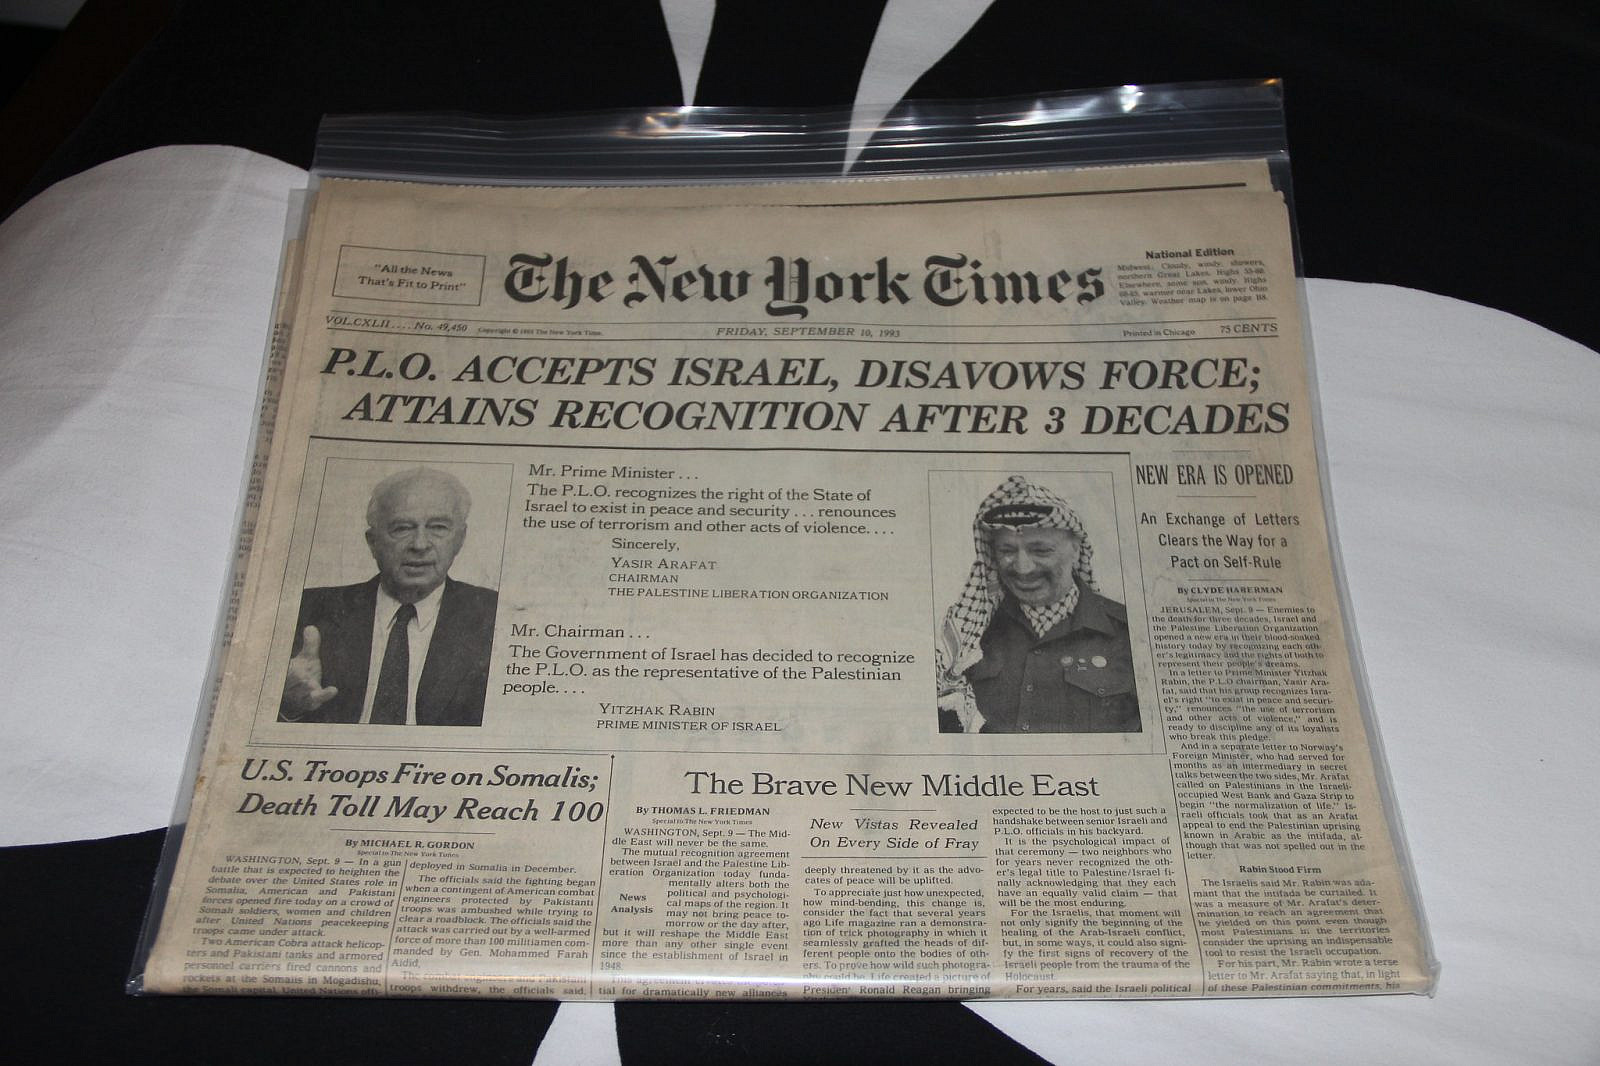 New York Times cover story on the signing of the Oslo Accords, September 10, 1993 (Daniel X. O'Neil/Flickr)